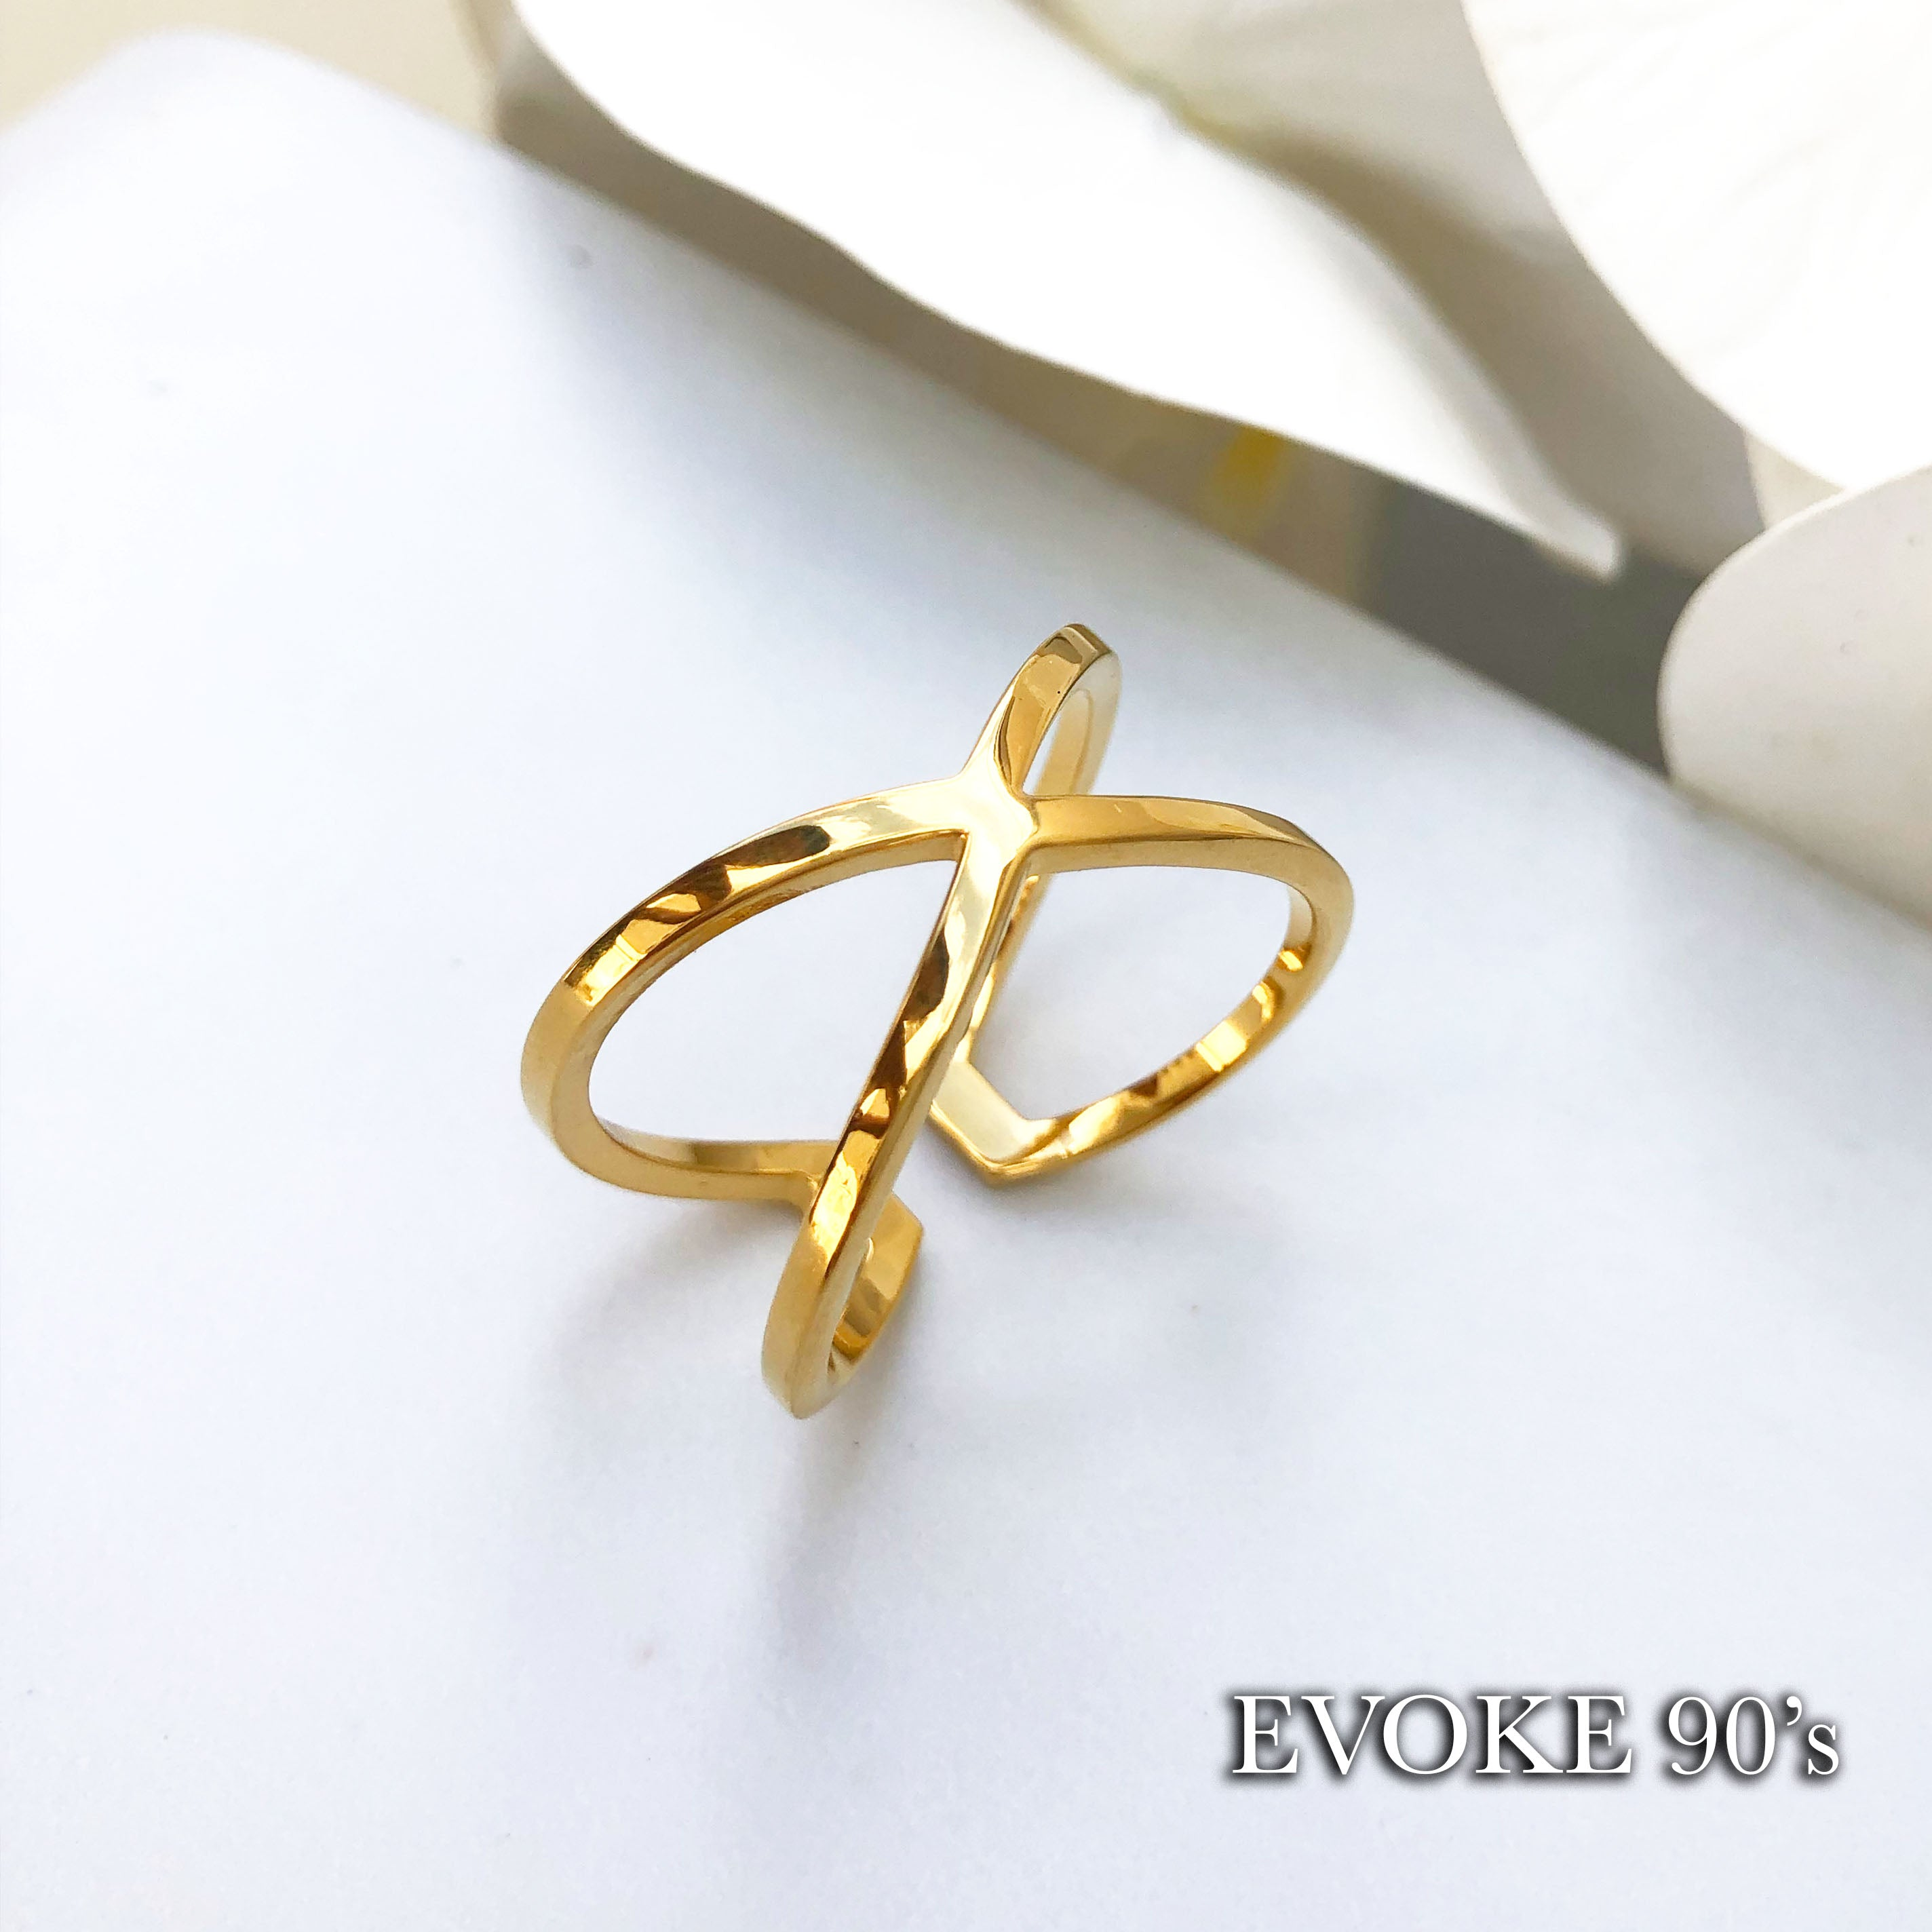 Cross Scarf Ring (18k Gold Plated Over Stainless Steel) Size 15